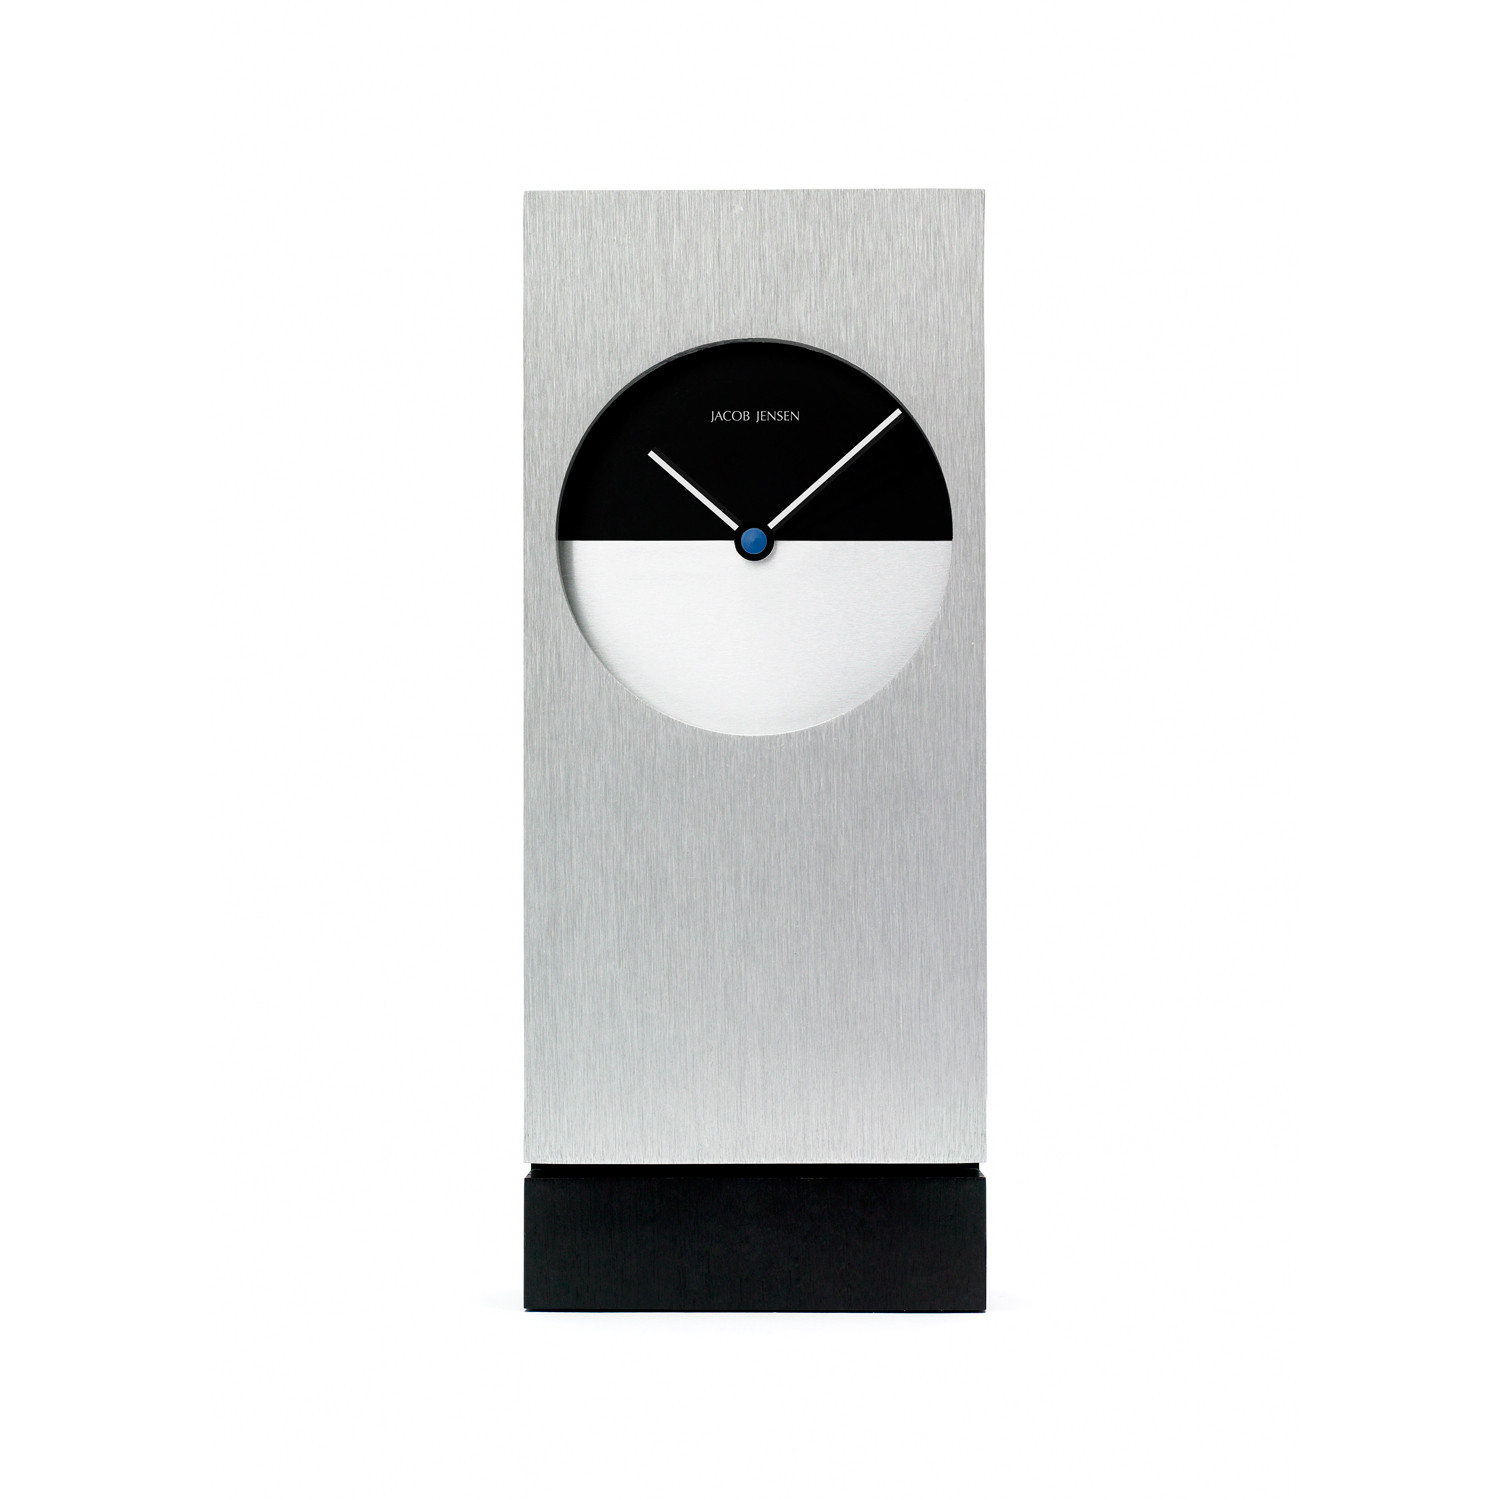 classic desk clock jacob jensen wall clocks touch of modern. Black Bedroom Furniture Sets. Home Design Ideas